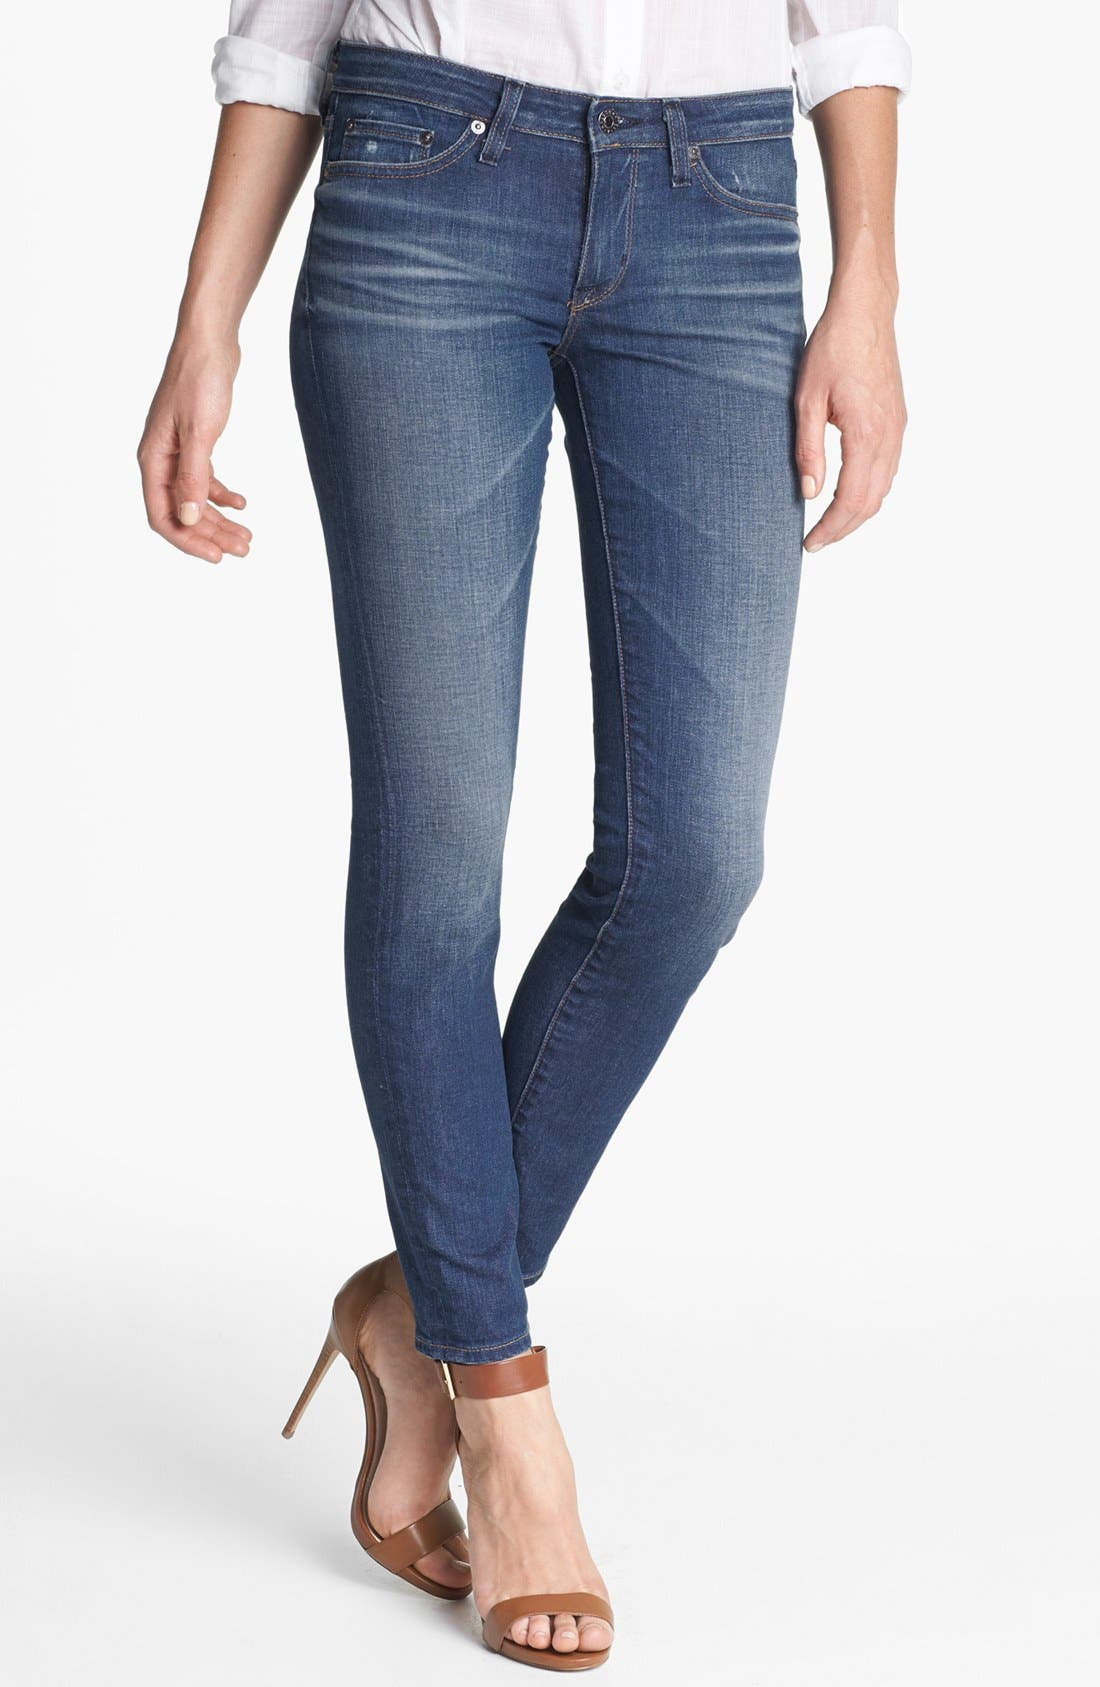 Alternate Image 1 Selected - Big Star 'Alex' Stretch Skinny Jeans (Six Year Tide) (Petite)